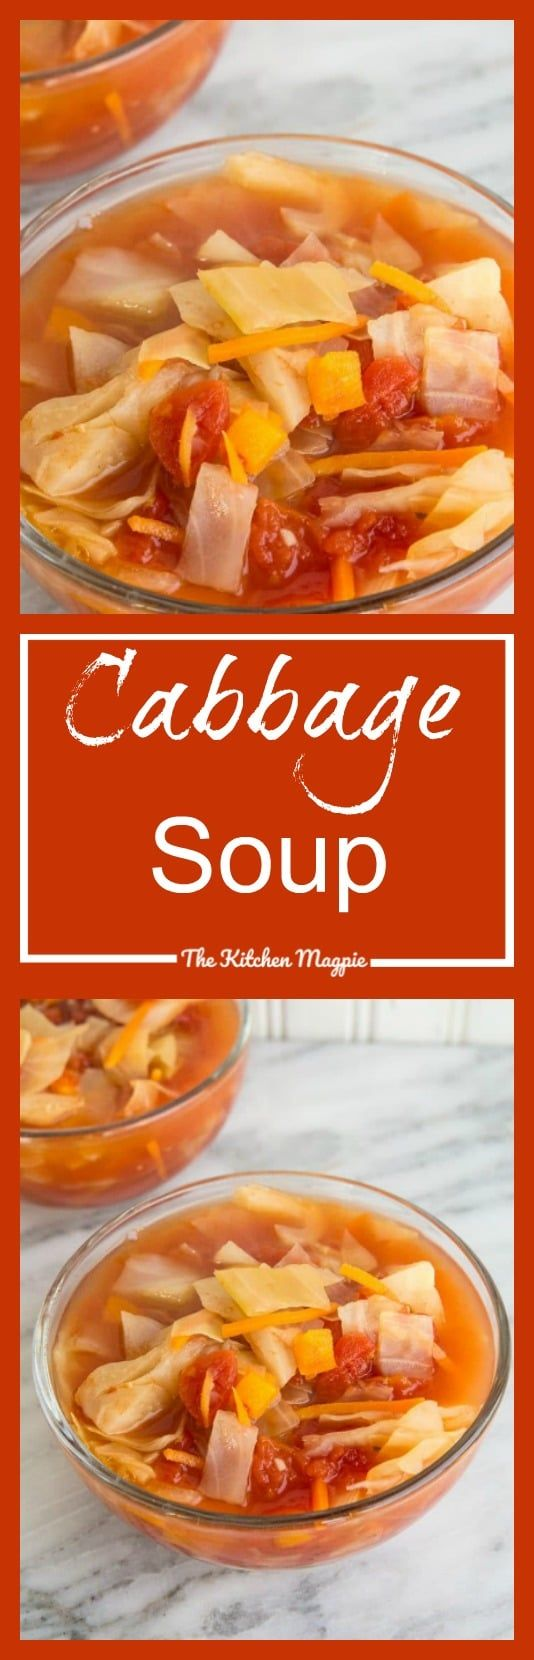 Cabbage Soup Recipe - The Soup That a Diet Ruined for Everyone - The Kitchen Magpie